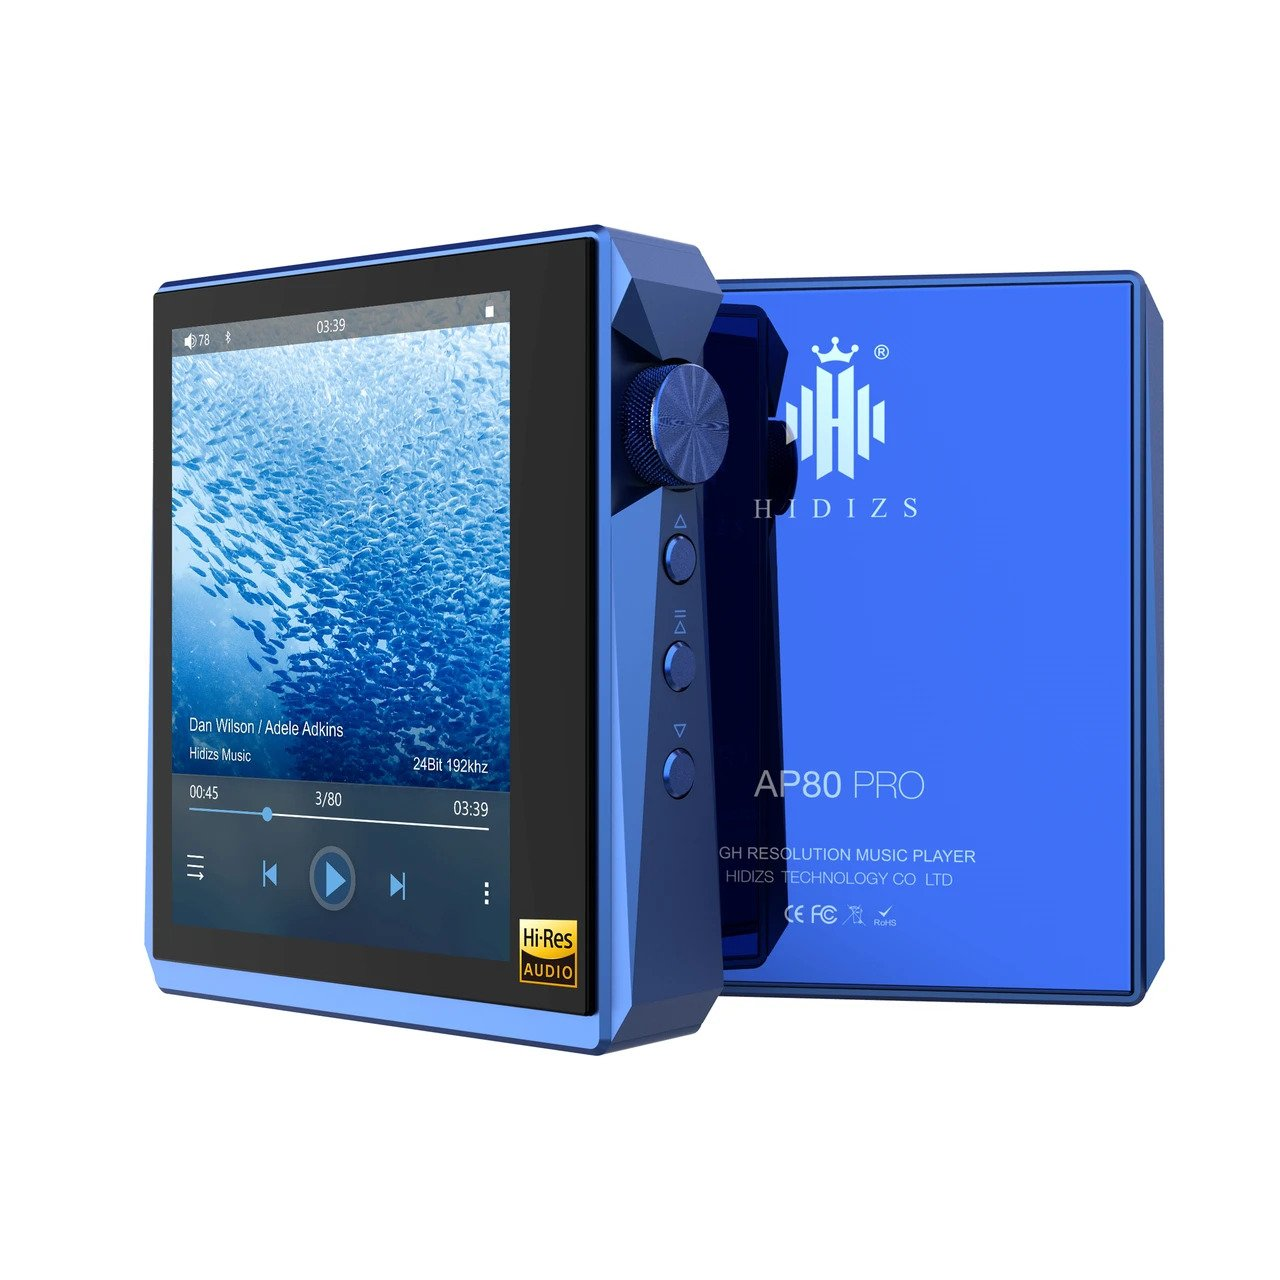 Hidizs AP80 Pro  Portable Music Player - Gears For Ears